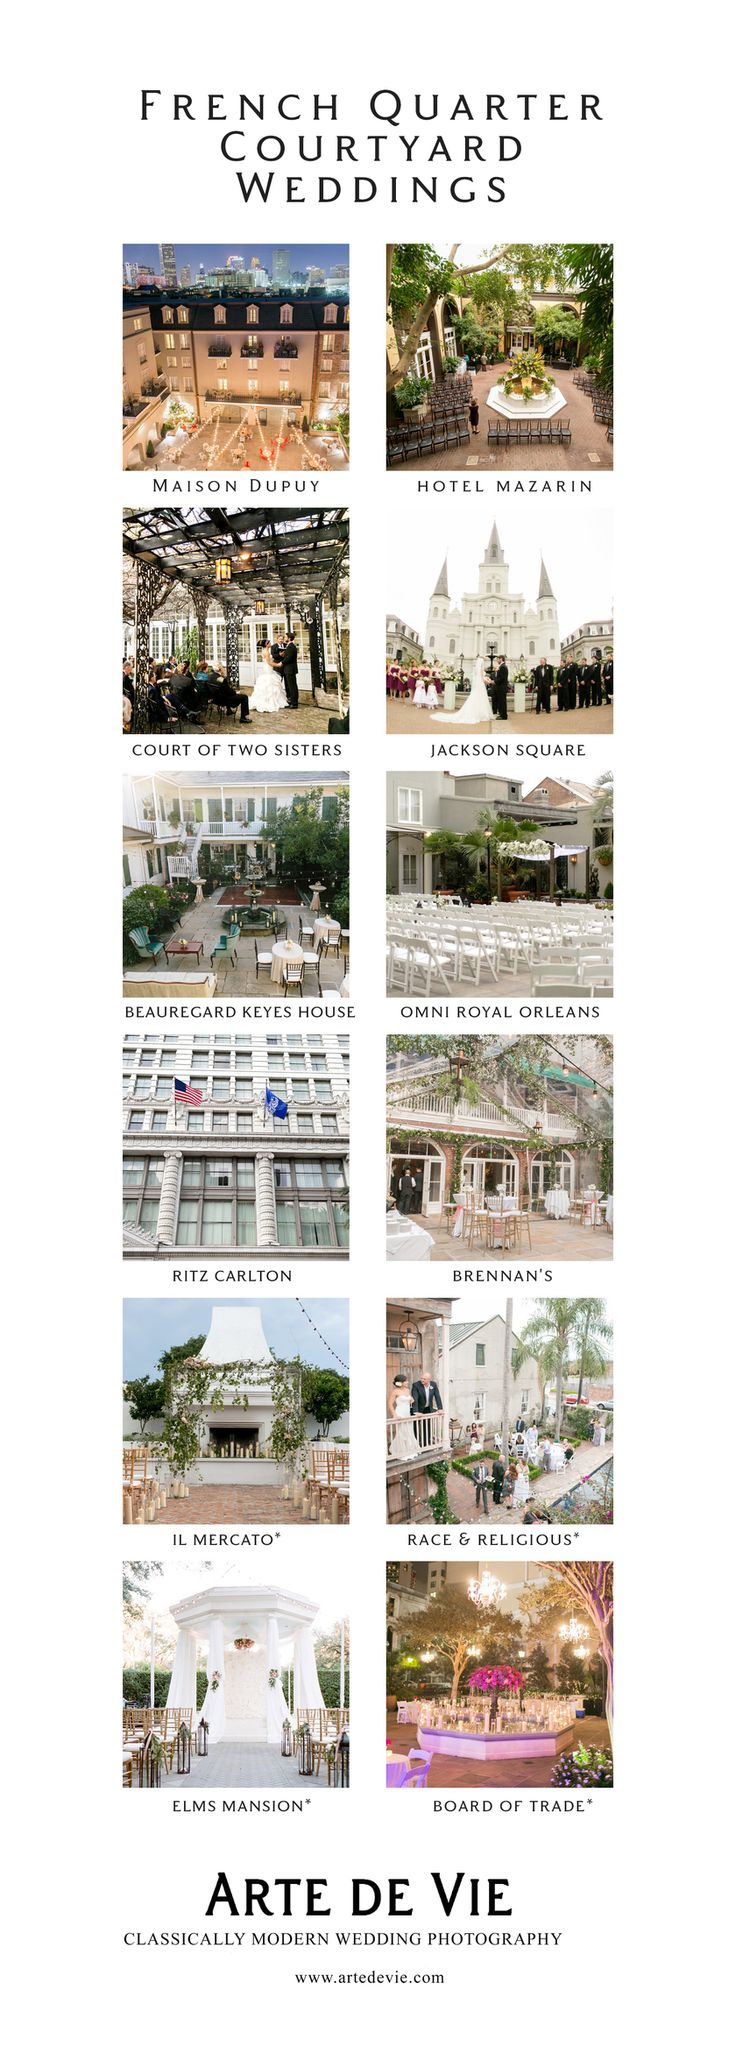 New Orleans Best French Quarter Courtyards for Weddings  Your must see guide for New Orleans Weddings!